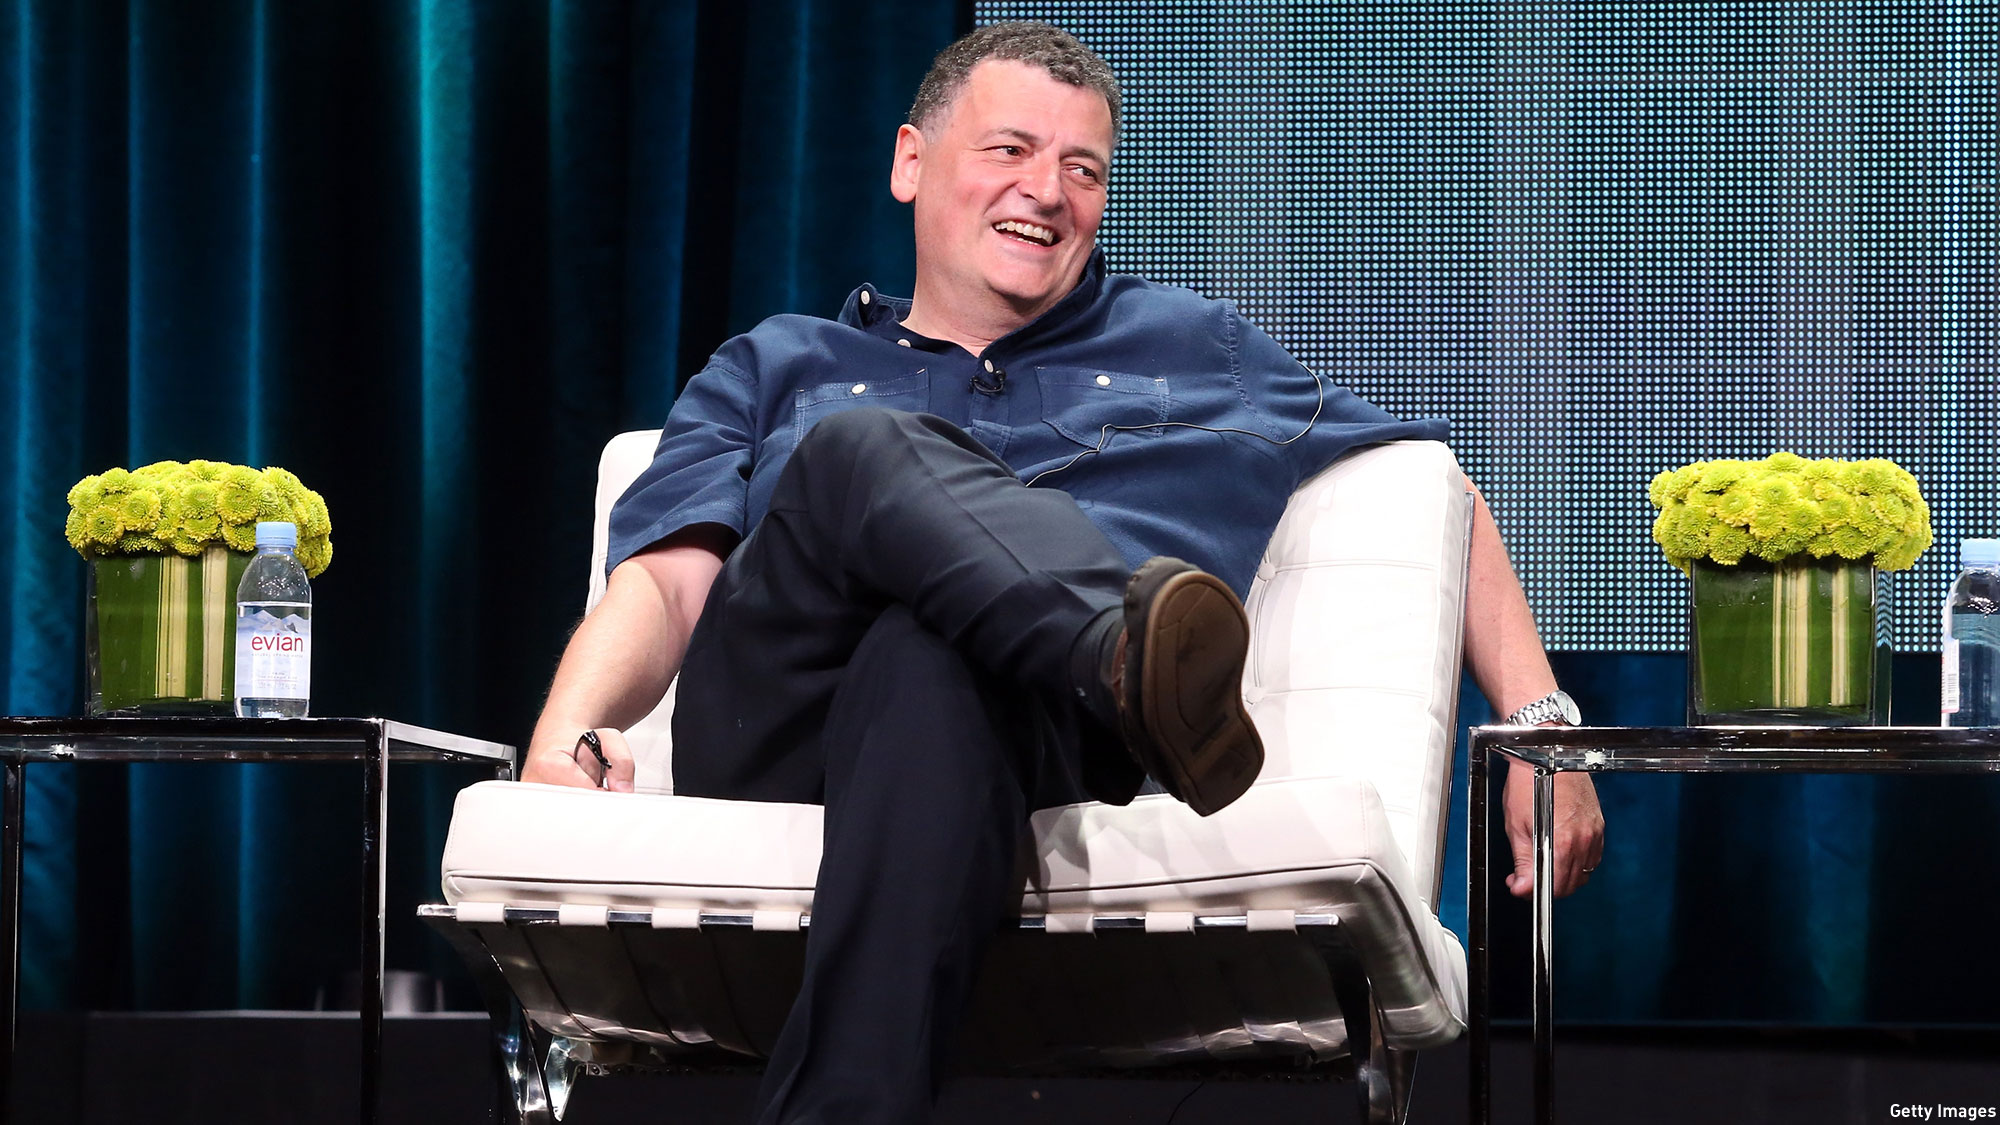 Steven Moffat at TCA. (Photo: Frederick M. Brown/Getty Images)